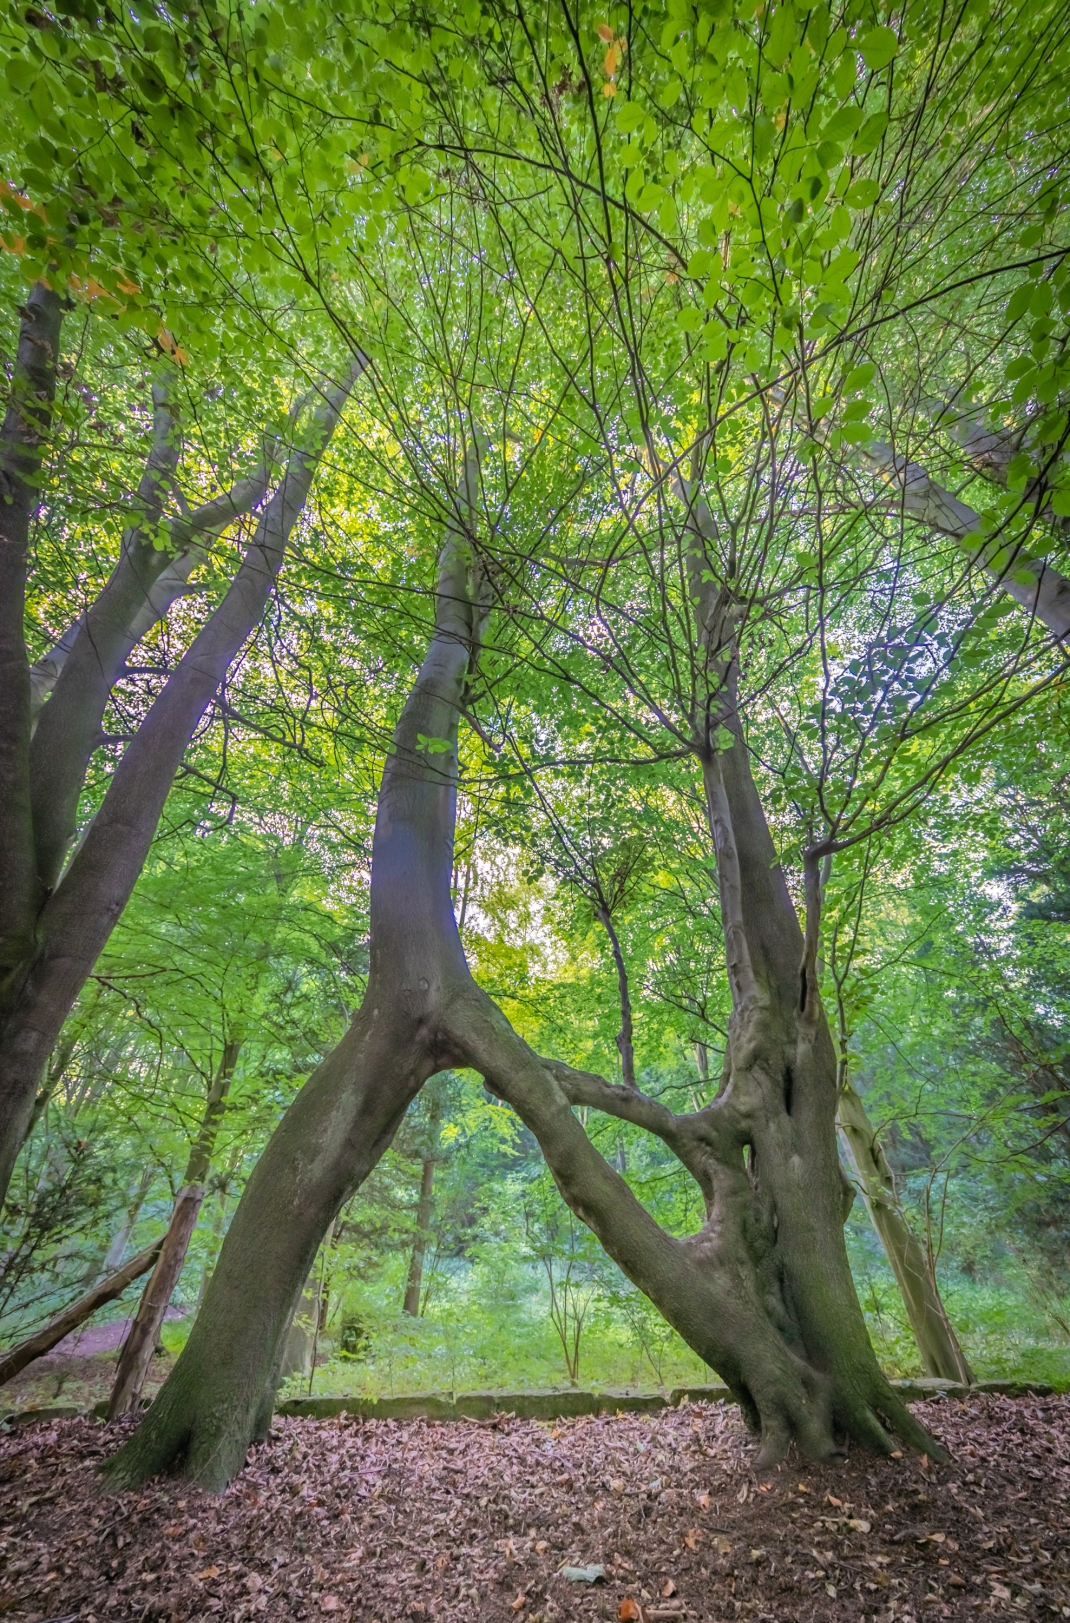 nellie's tree United Kingdom UK European tree of the year 2019